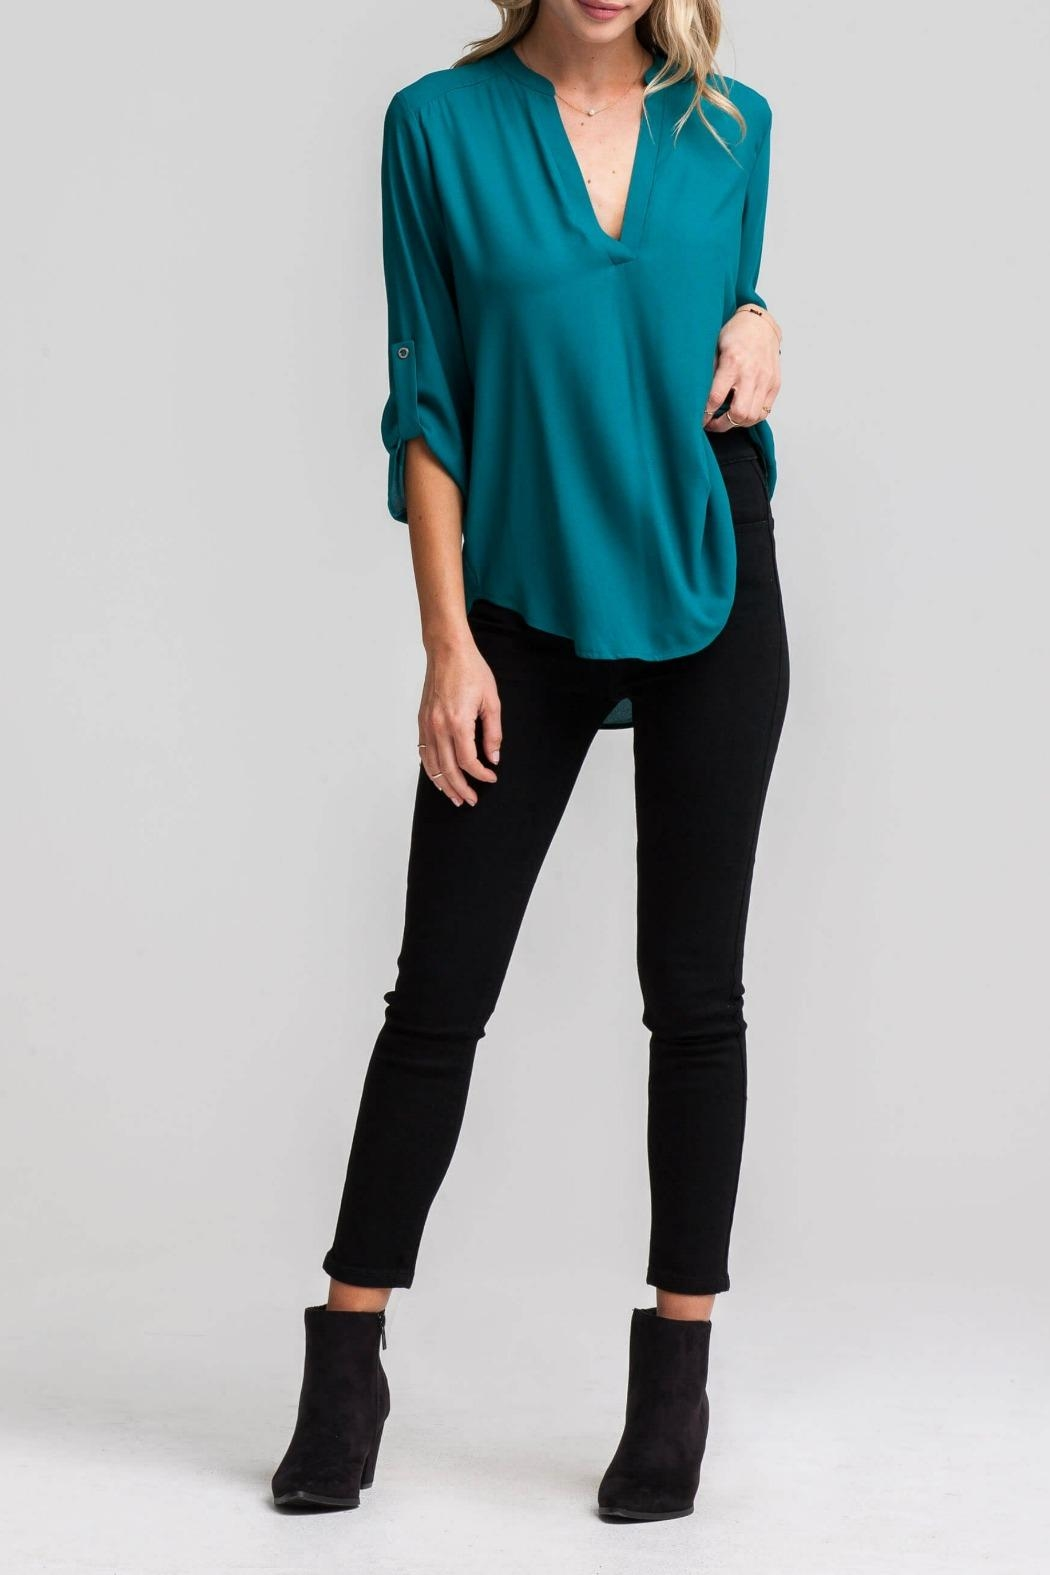 Lush Lovely Blue Blouse - Front Cropped Image